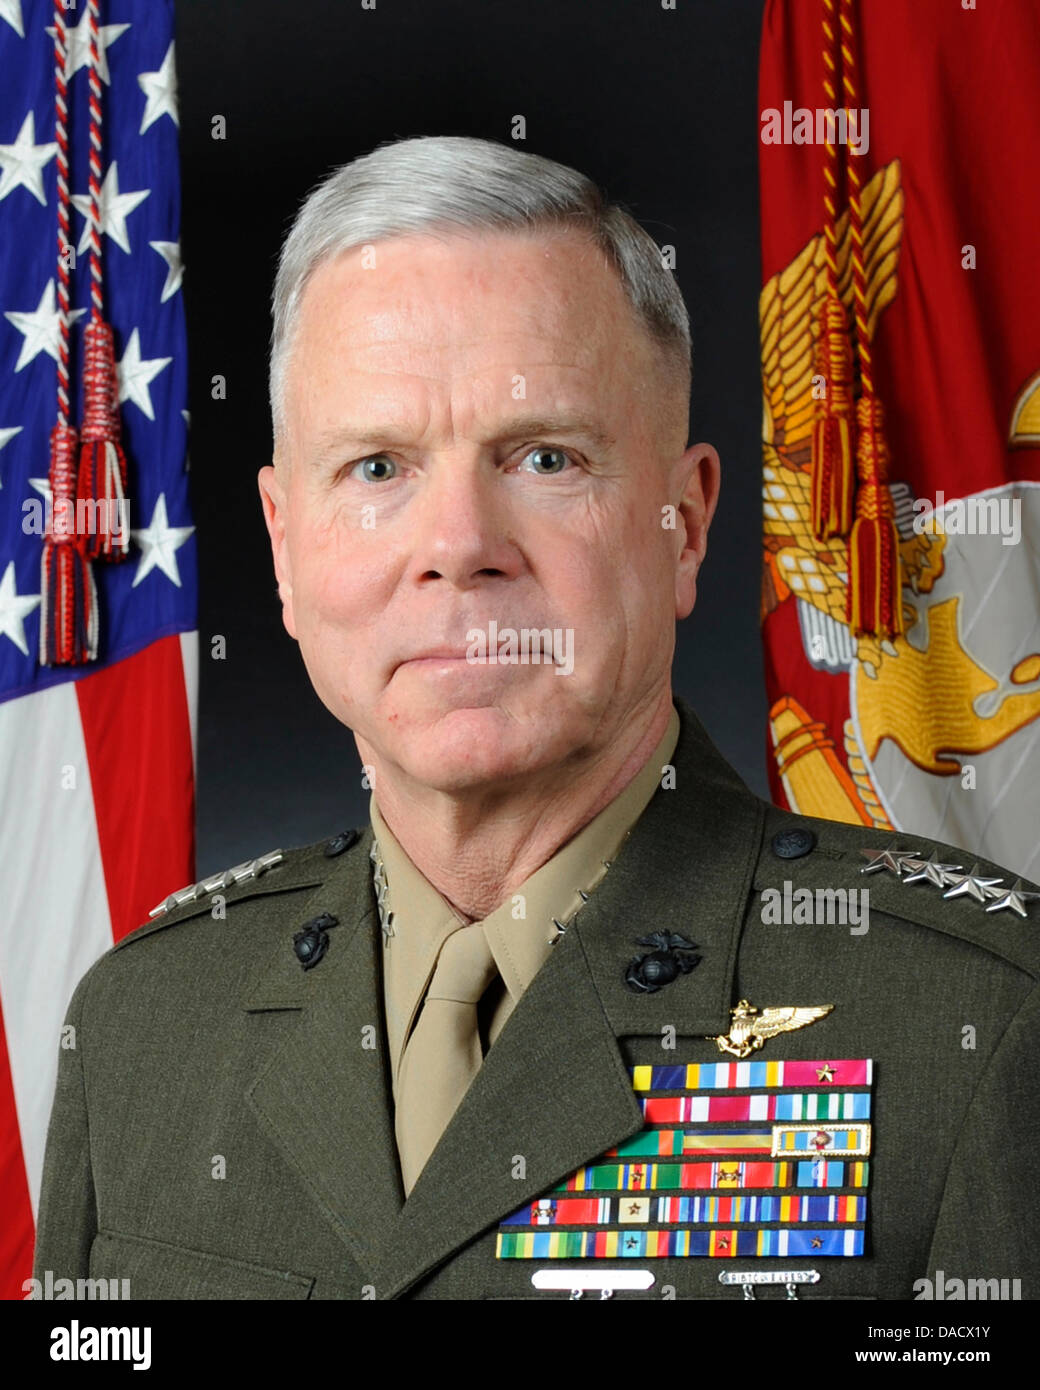 Official portrait, uncovered, of the 35th Commandant of the Marine Corps, General James F. Amos. General Amos is Stock Photo